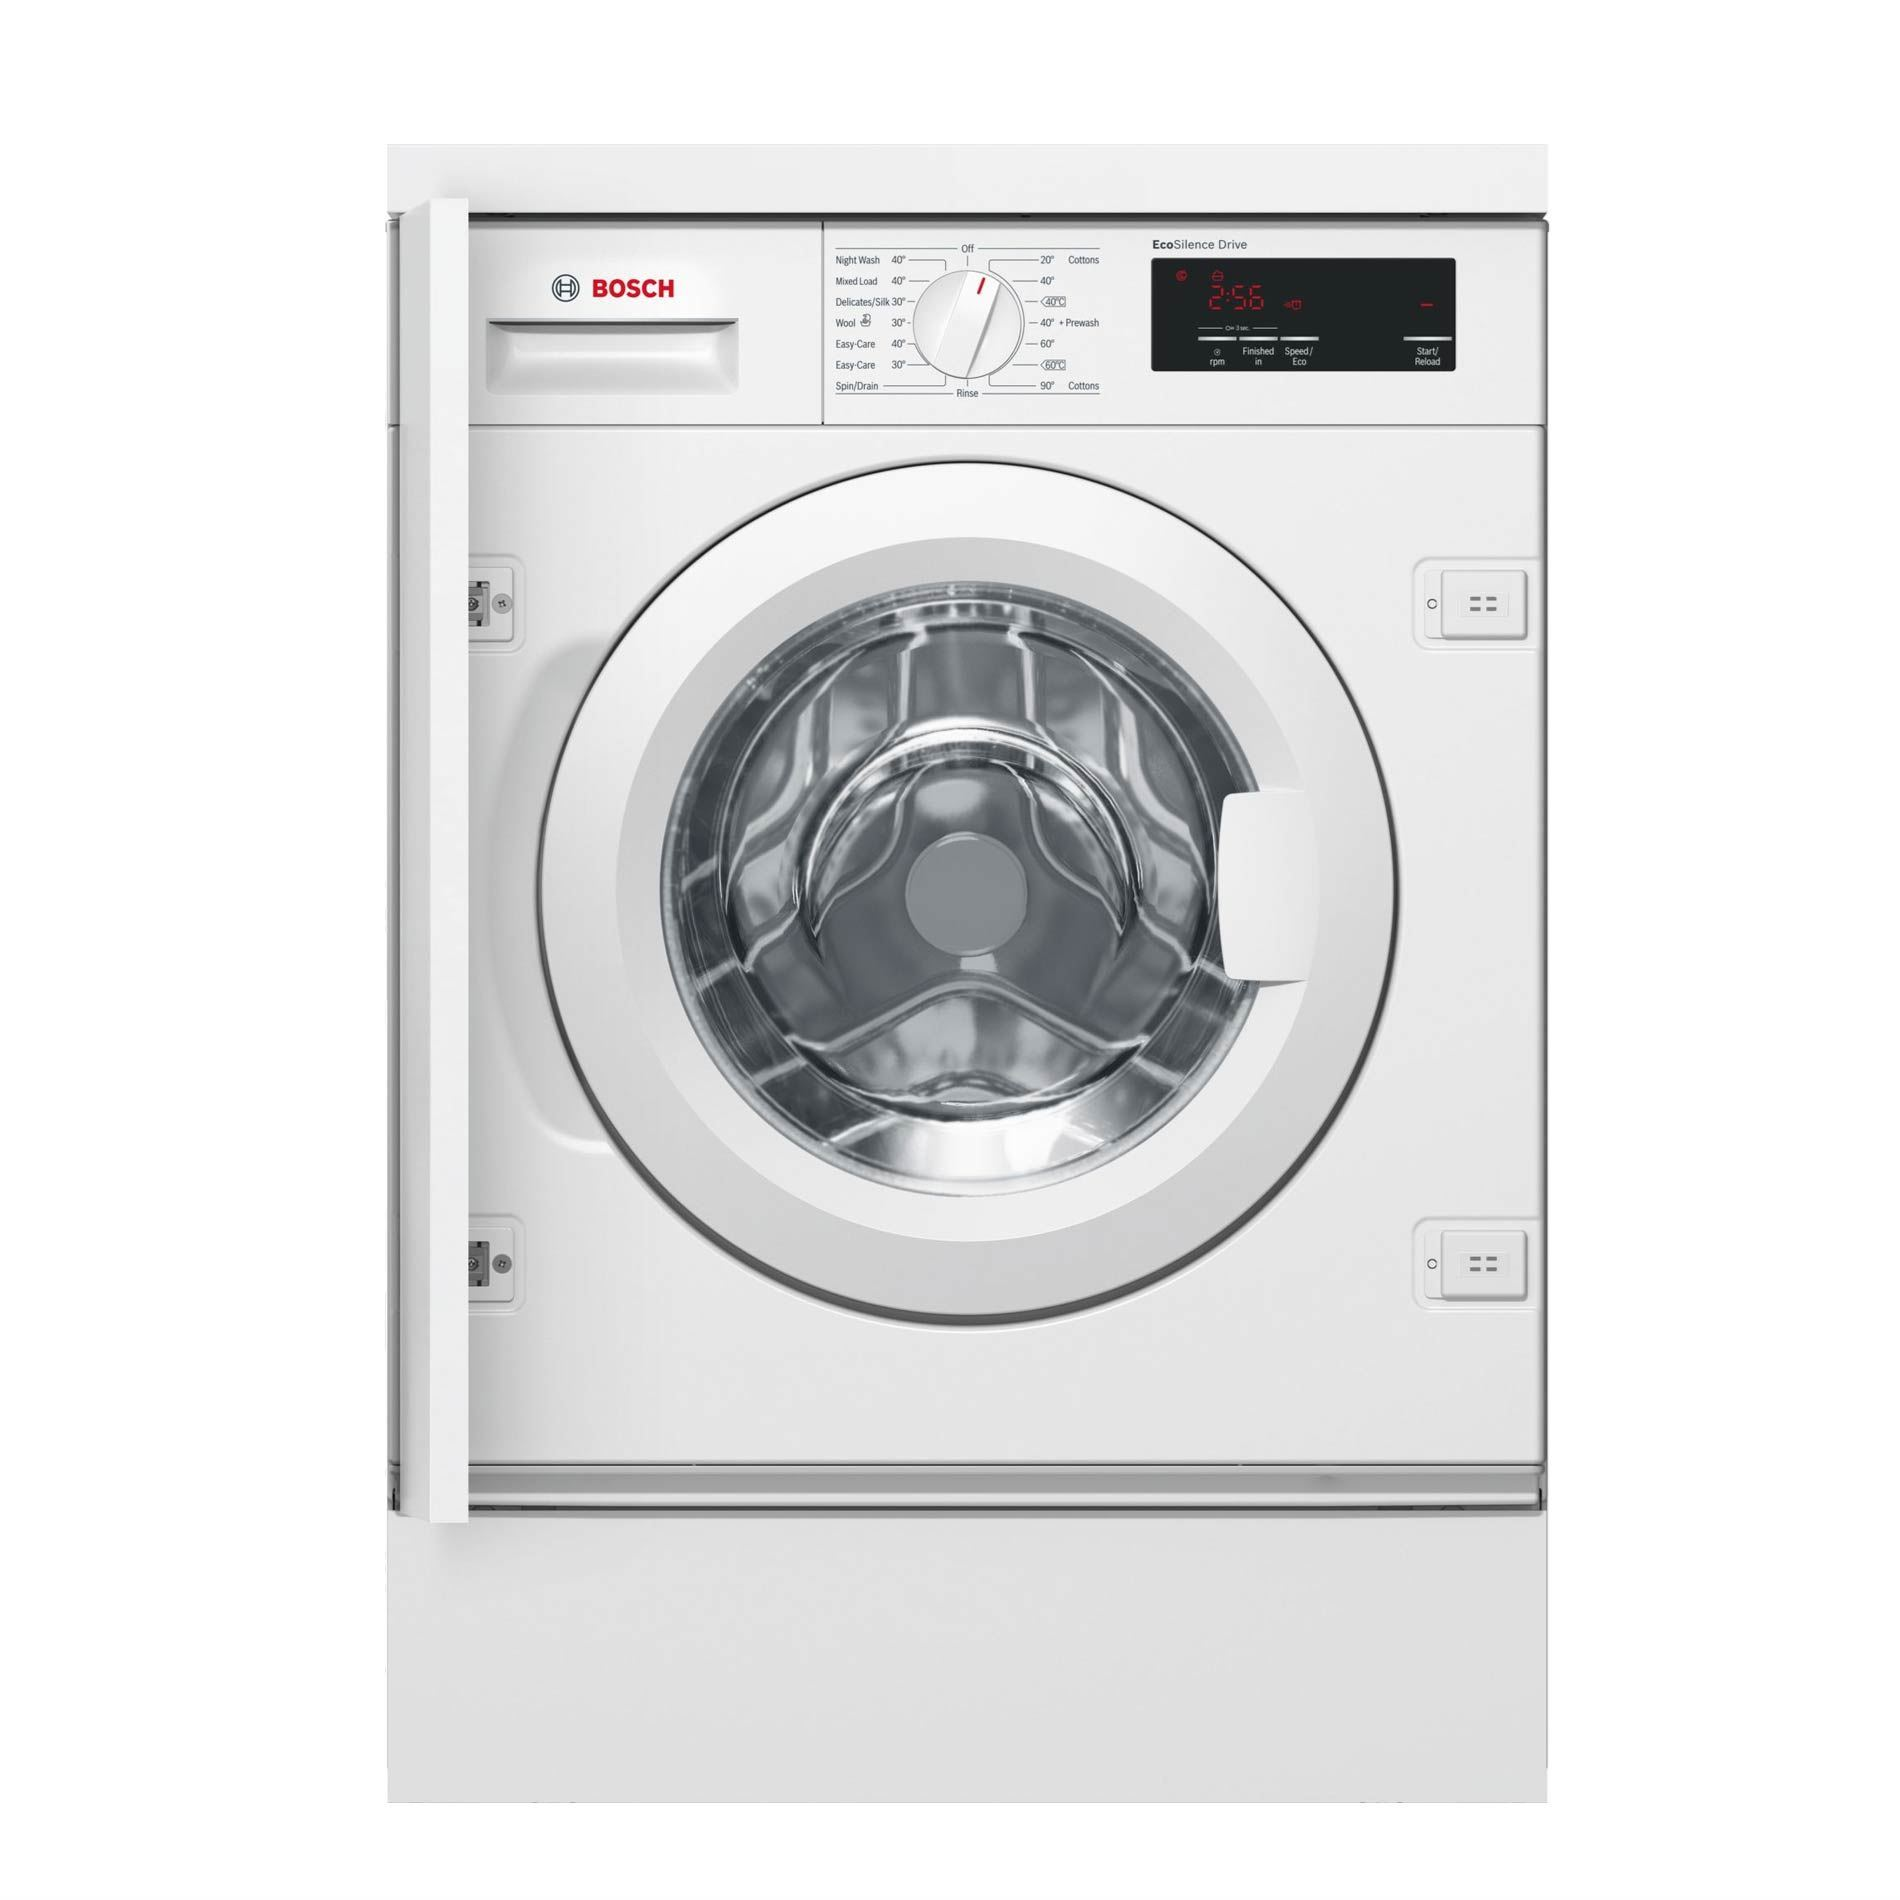 Picture of WIW28300GB Fully Integrated Automatic Washing Machine